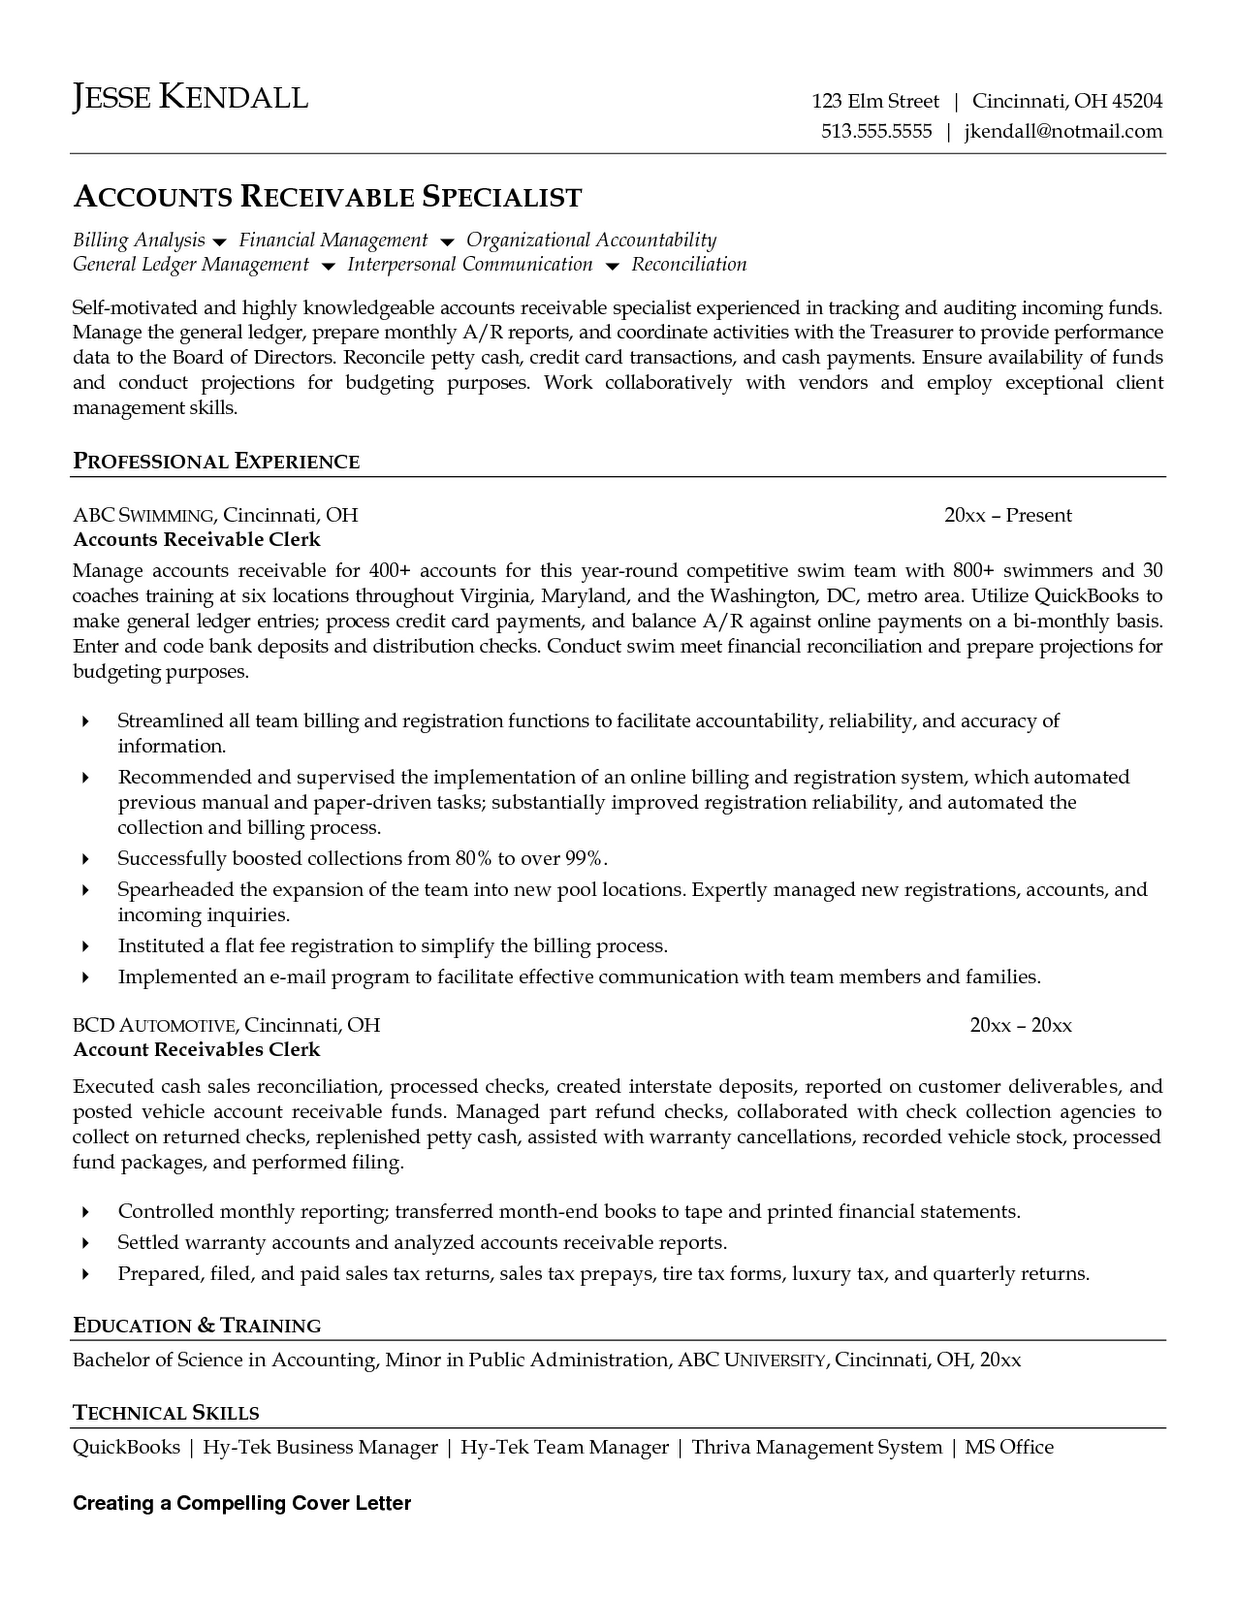 Lifeclever resume